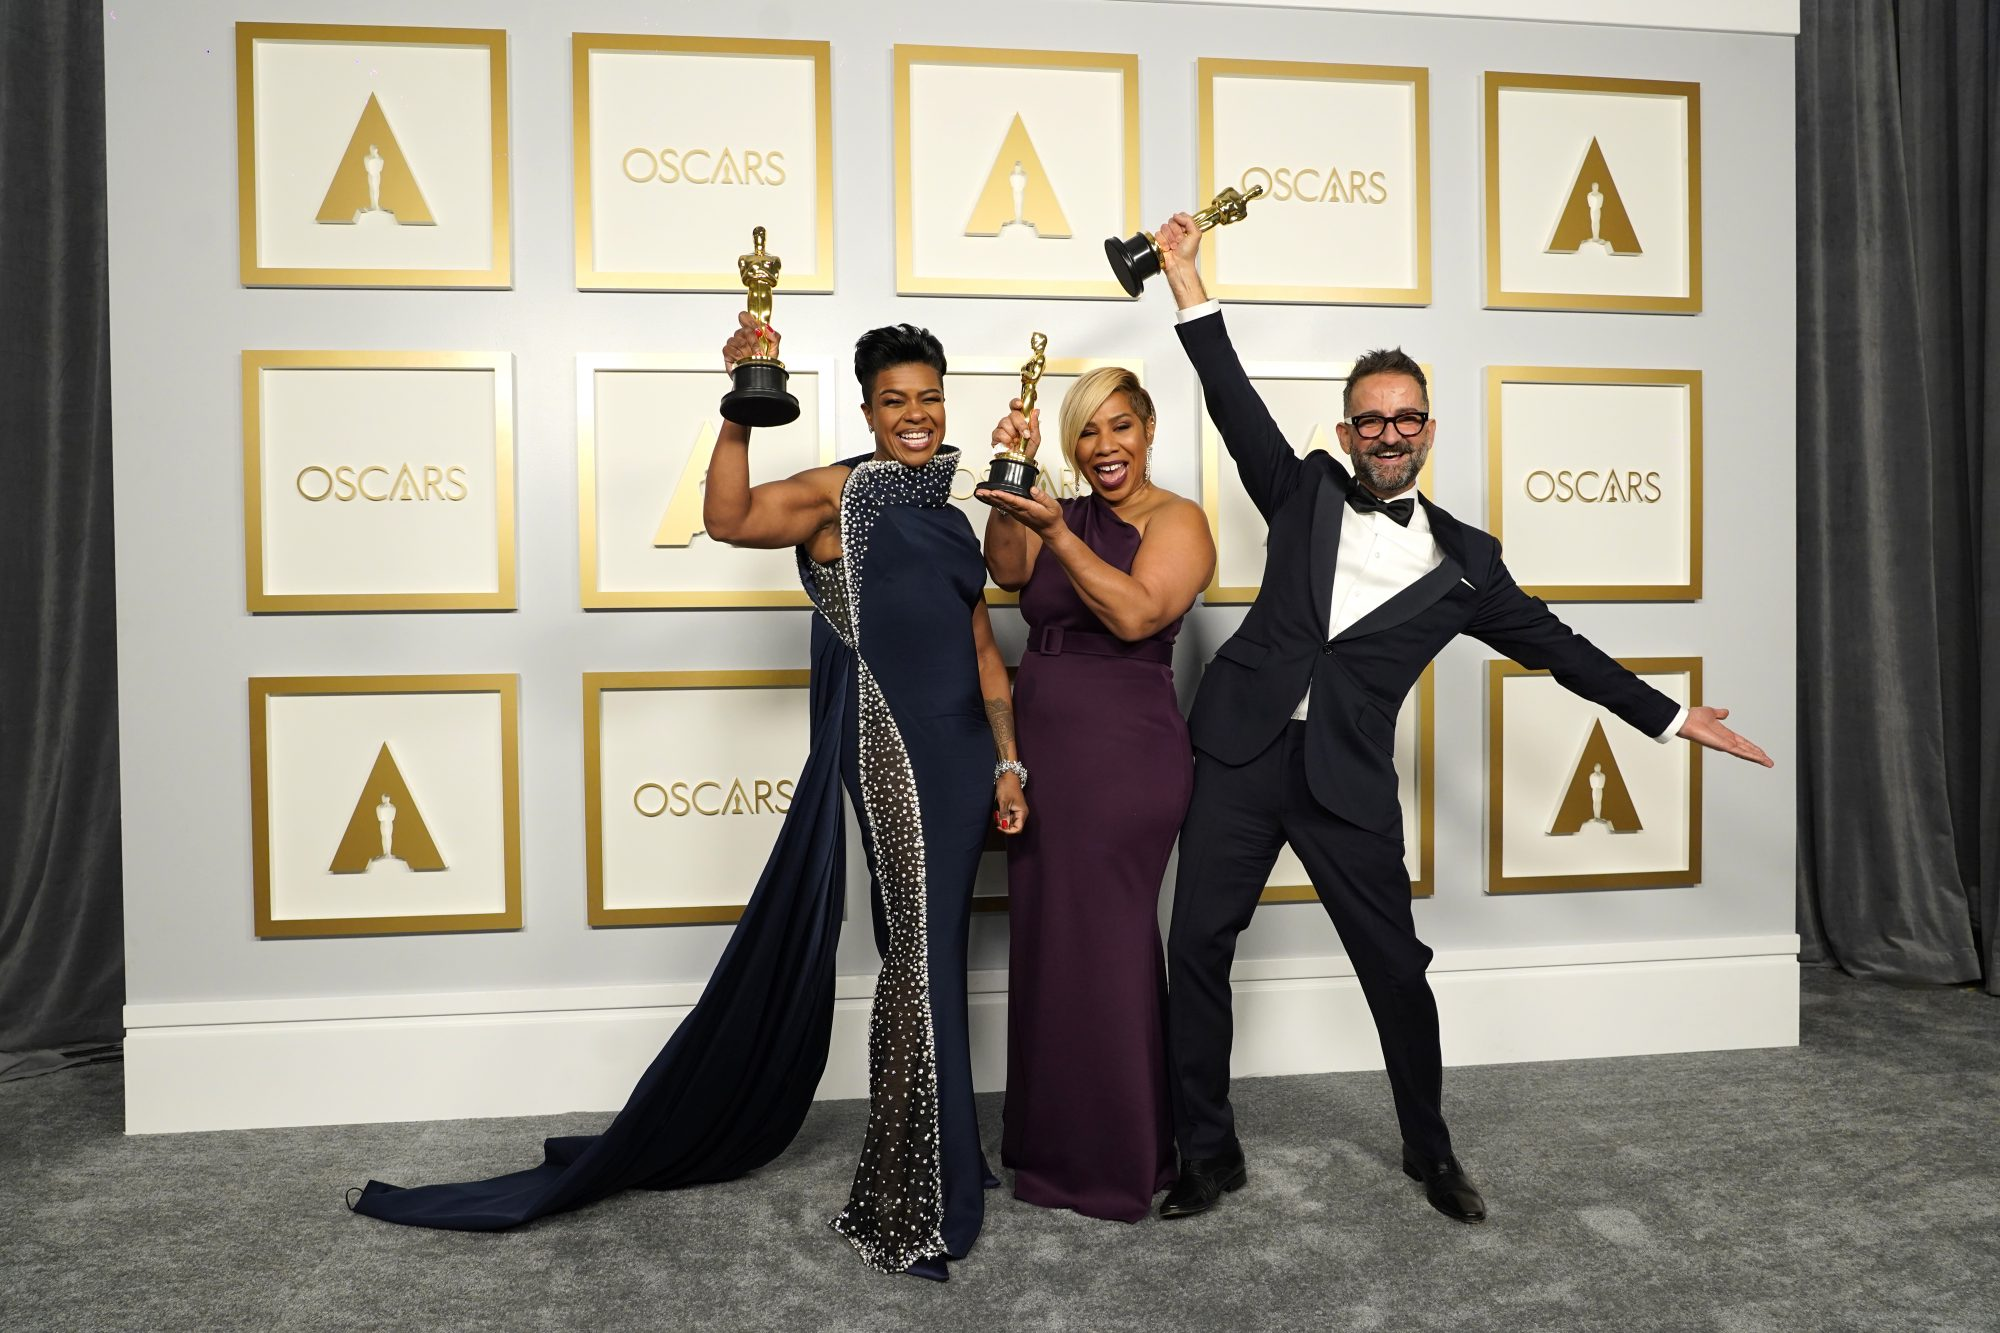 Two dark-skinned women and one medium skinned man celebrate in front of the Oscars photo backdrop. They are dressed in fancy evening wear and each hold up an Oscar statue with big smiles on their faces.